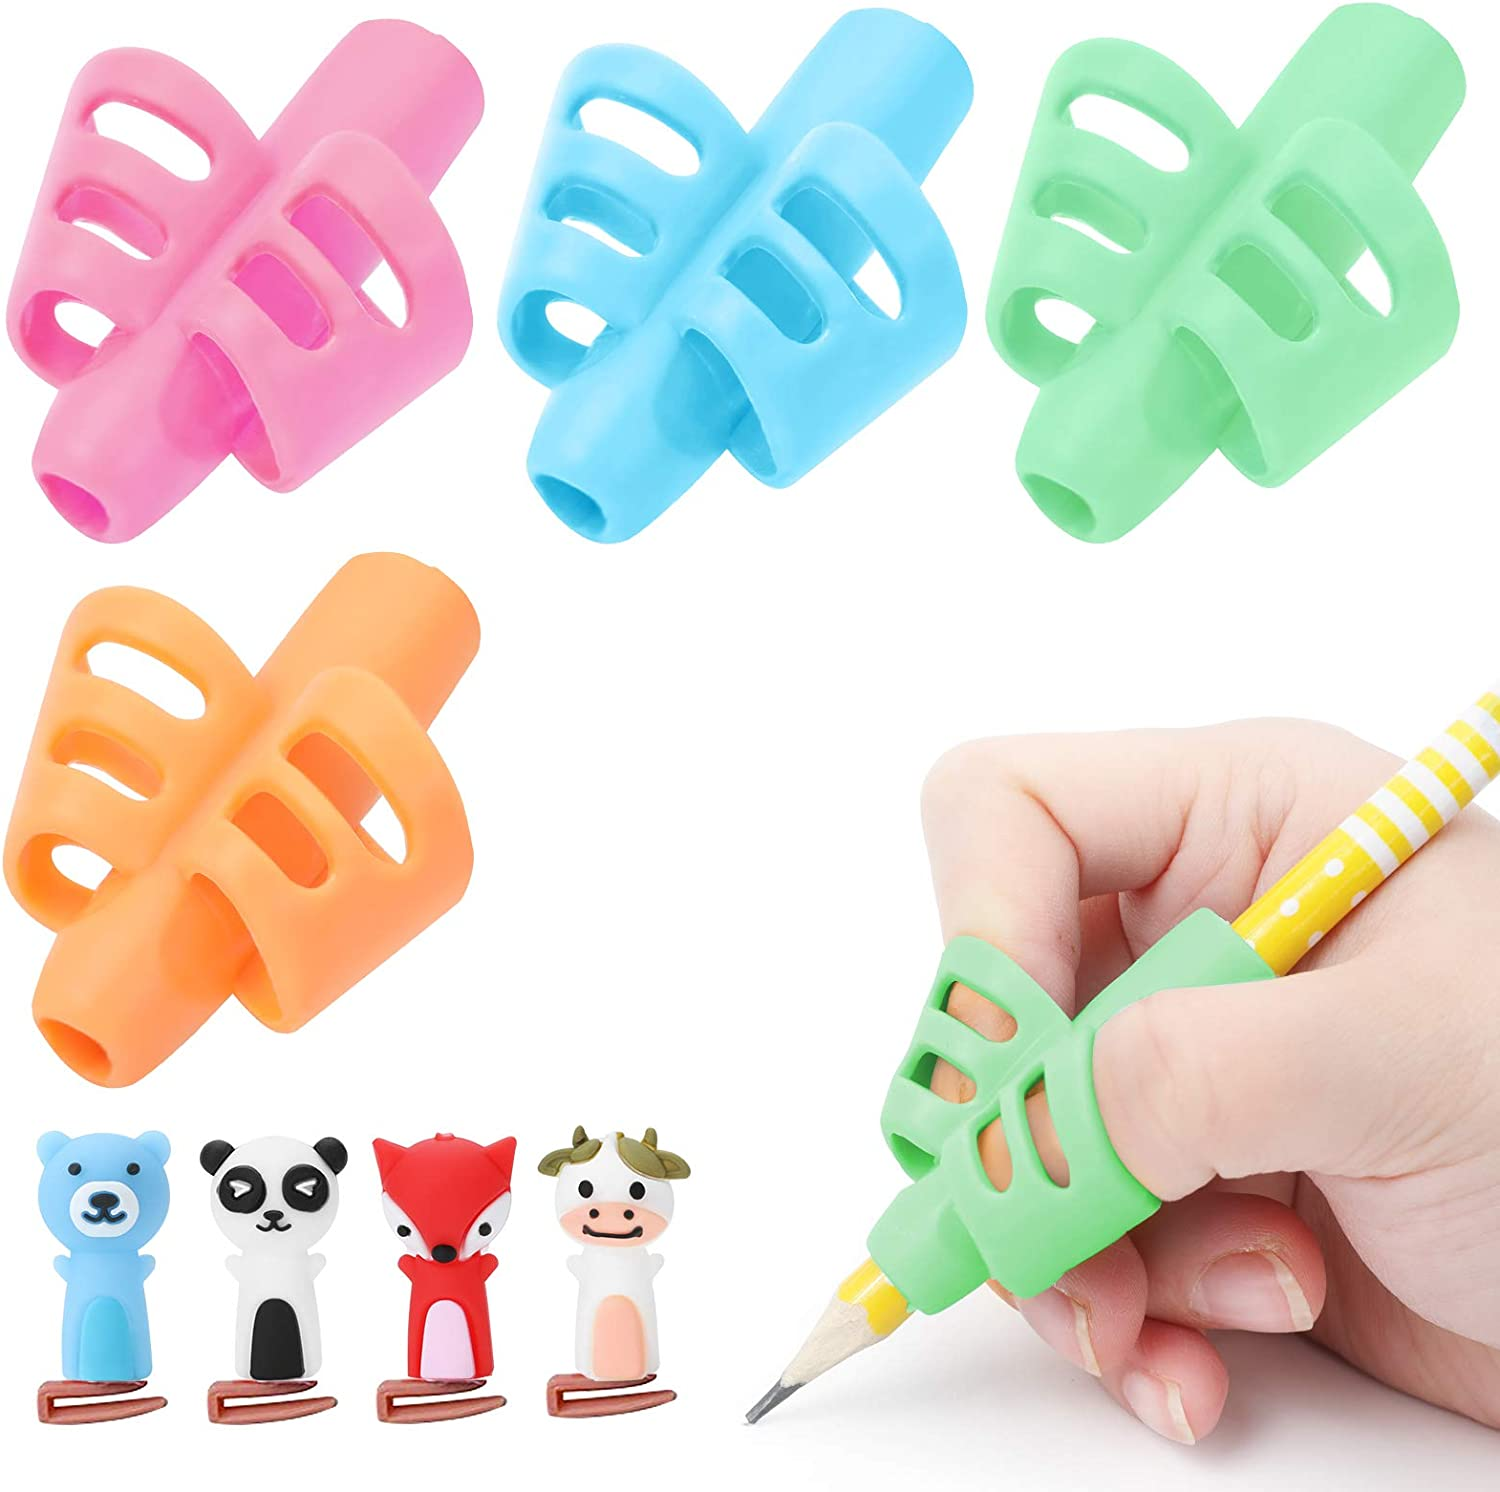 5PCS Kids Handwriting Aid Control Pencil Pen Right Left Handed Soft Grip Tool